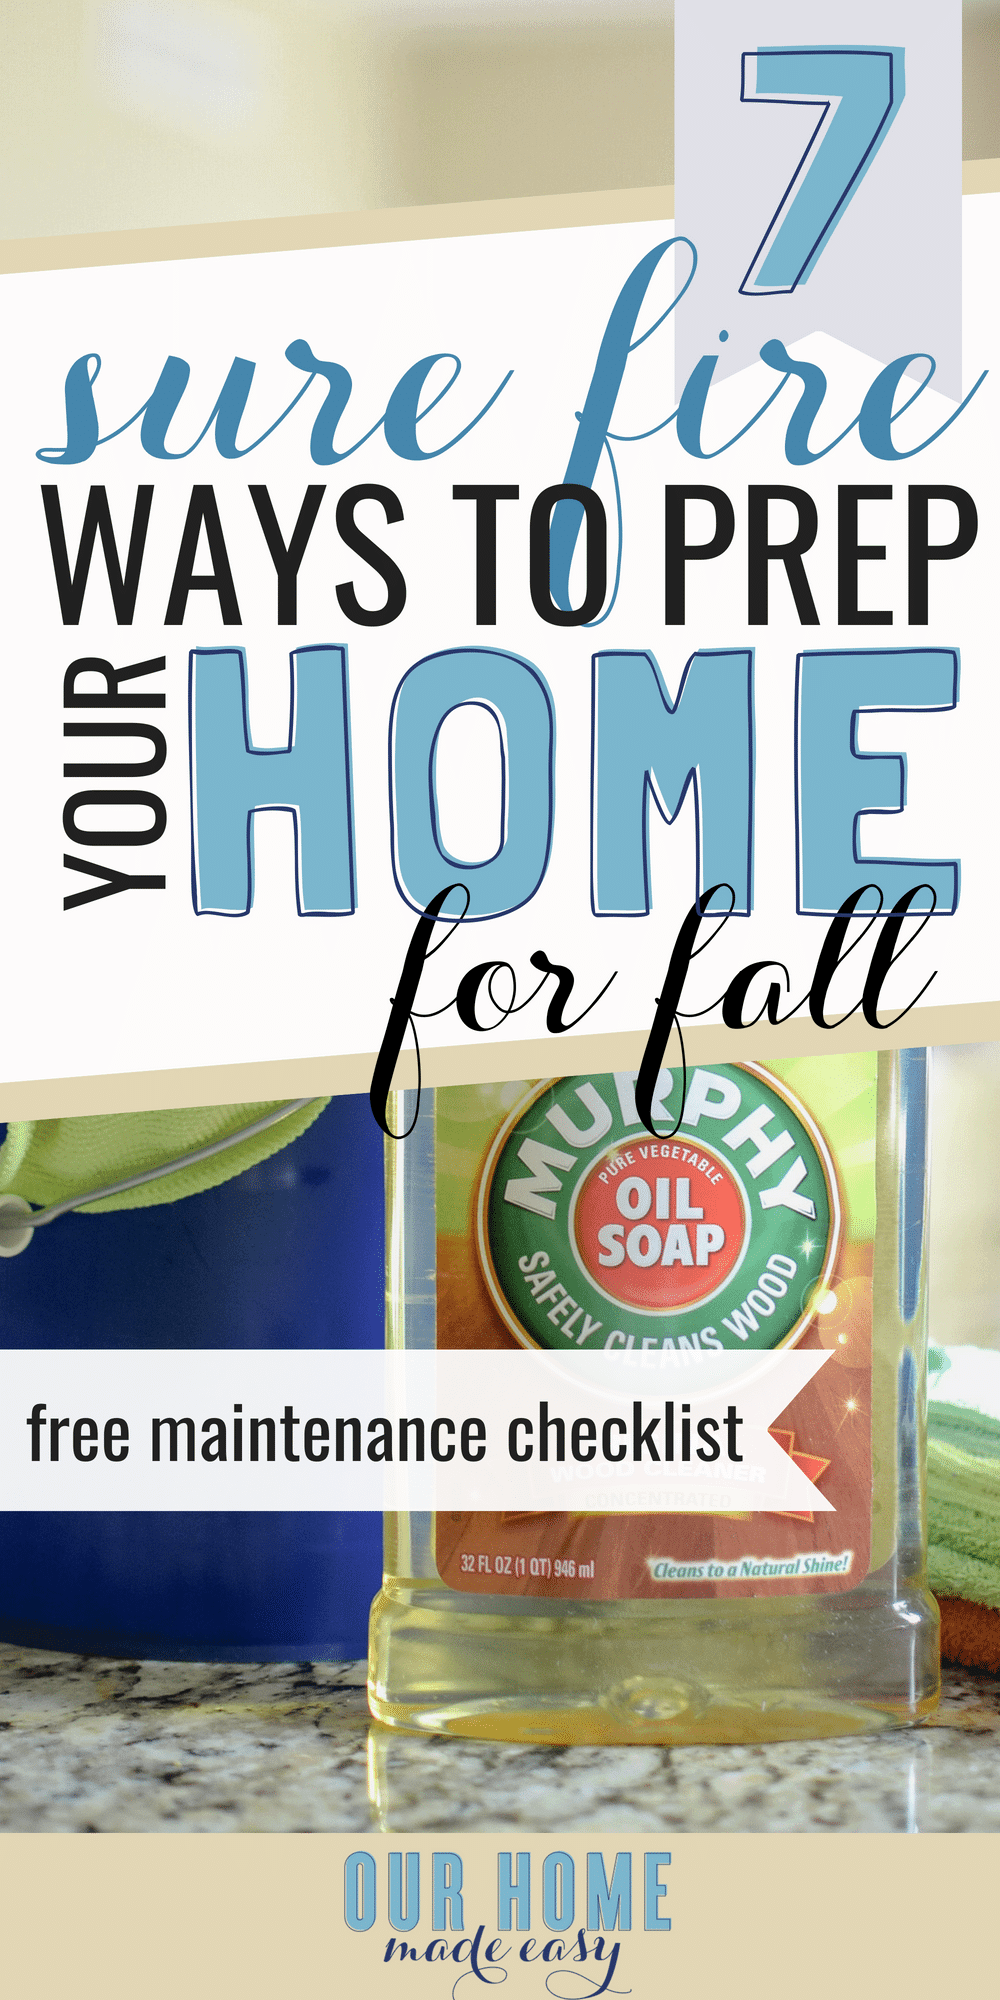 Get your home ready for fall in no time! Download the free fall maintenance checklist! #home #fall #diy